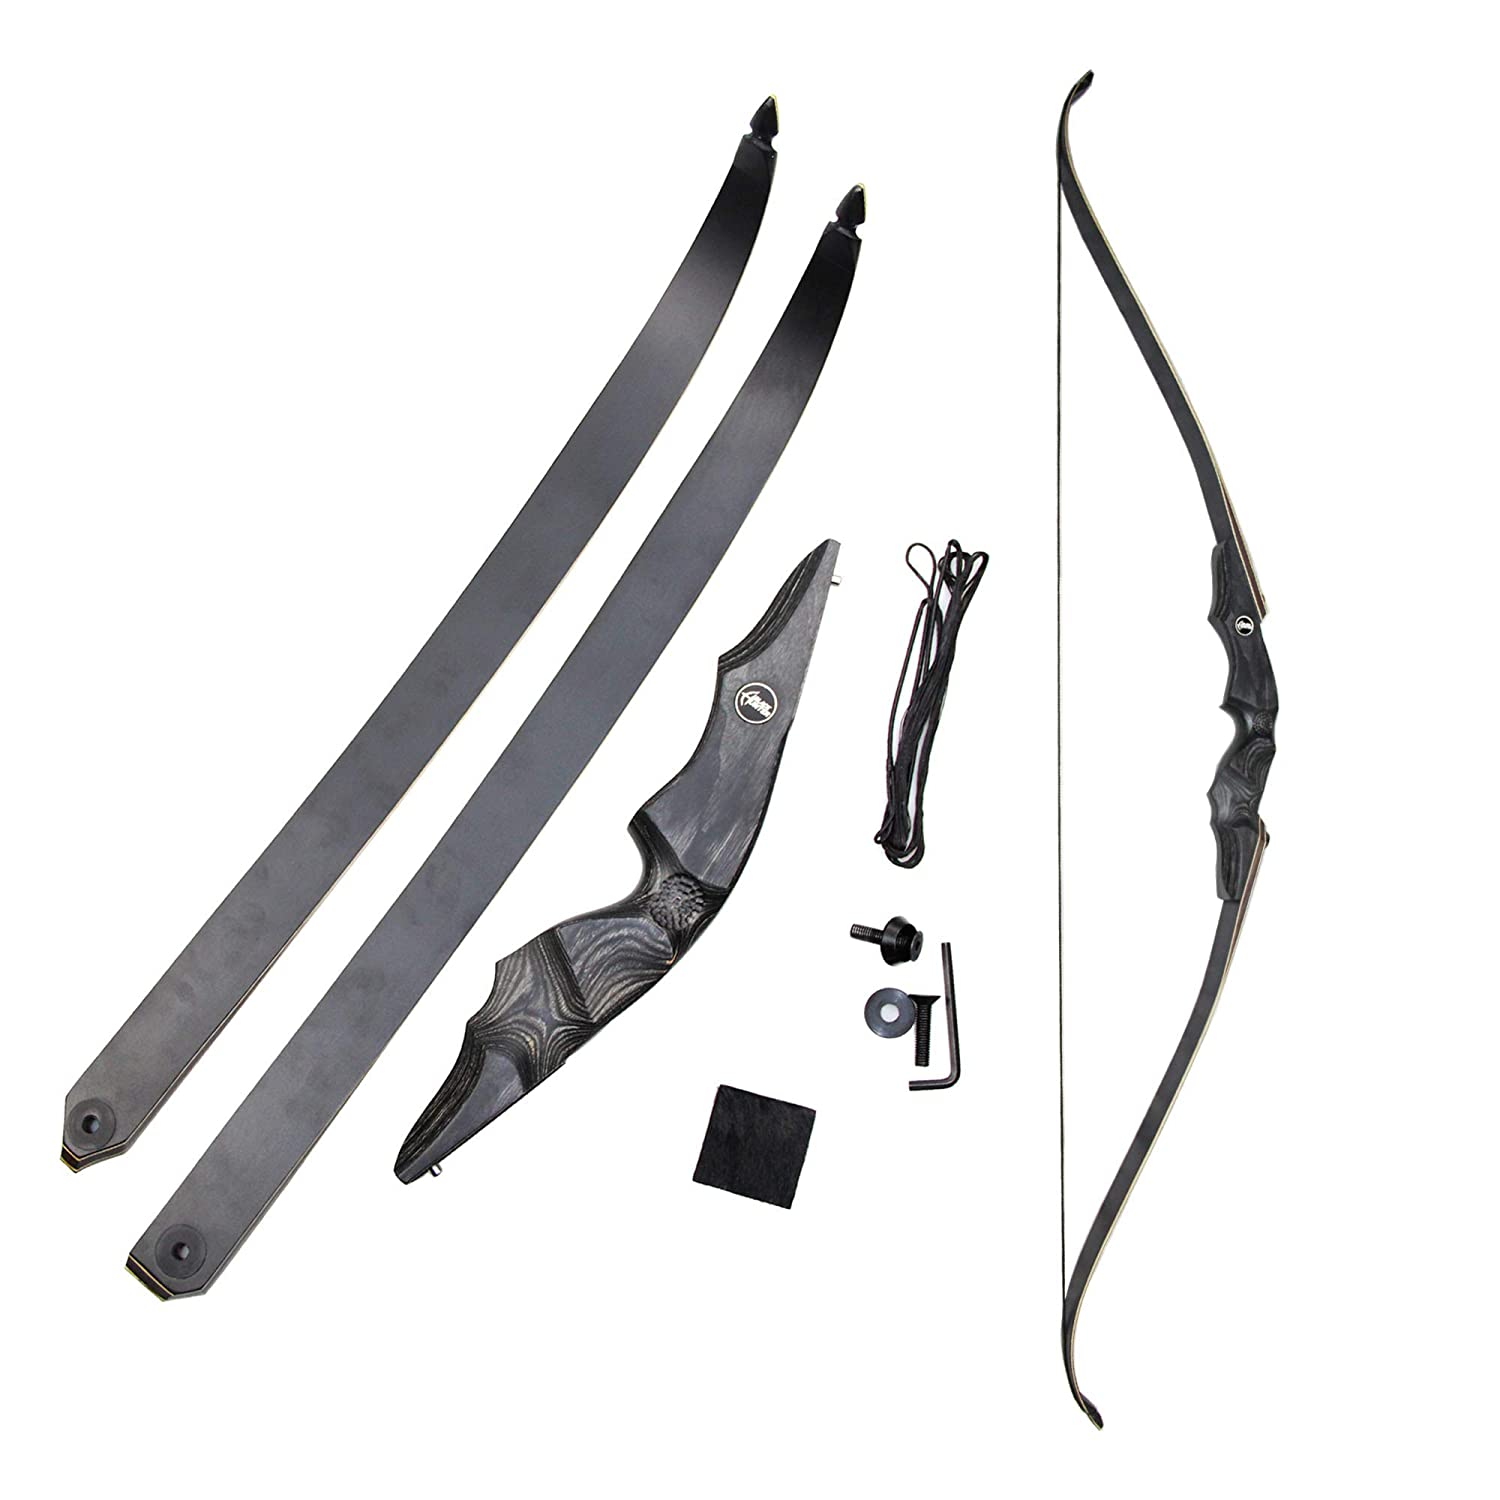 GLURAK Archery Bows 60 Takedown Traditional Recurve Wooden Bow with Carved Riser for Hunting